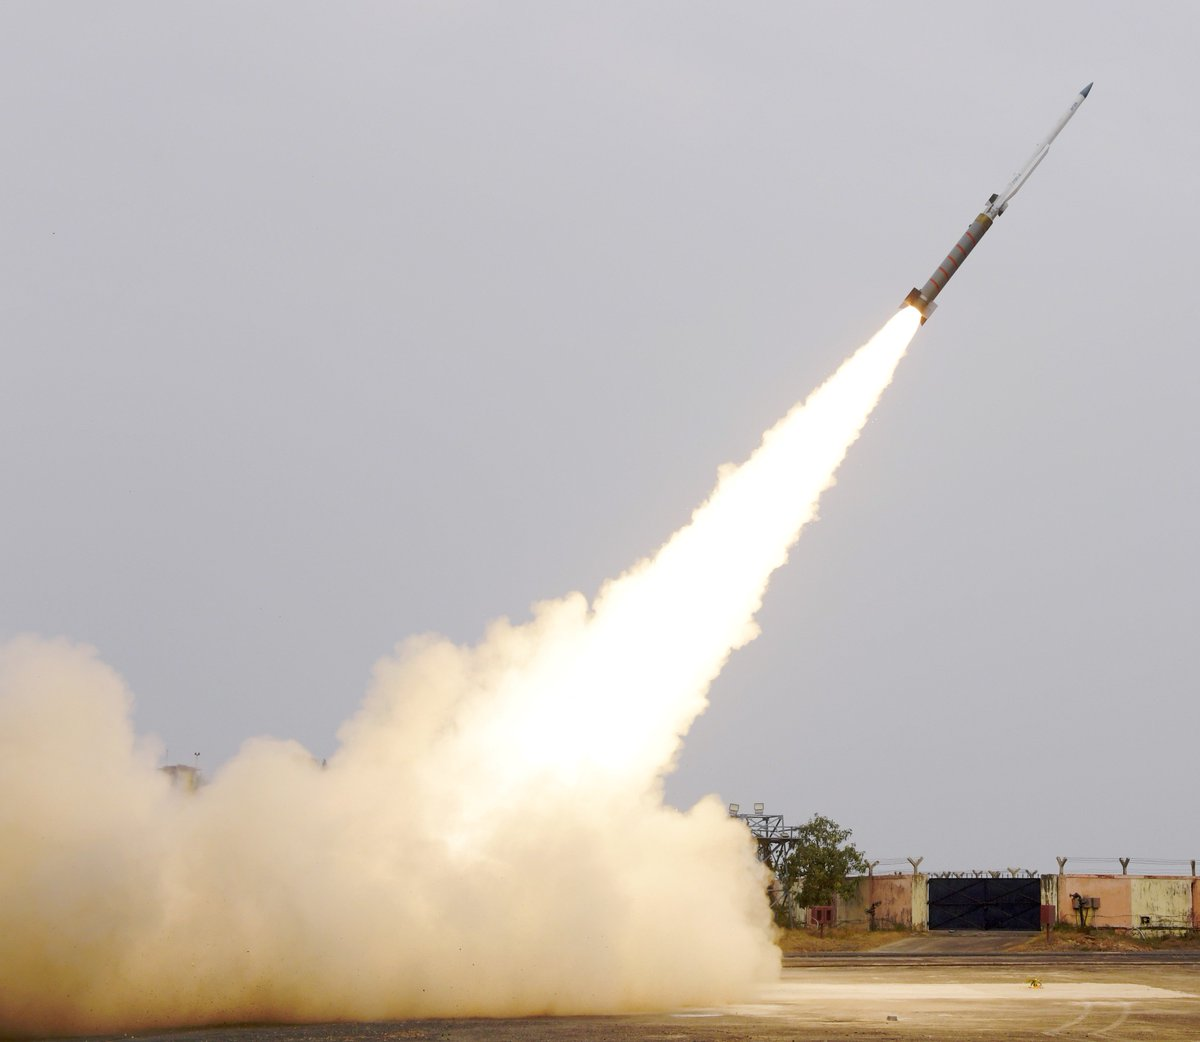 India Tests Solid Fuel Ducted Ramjet propulsion based missile system